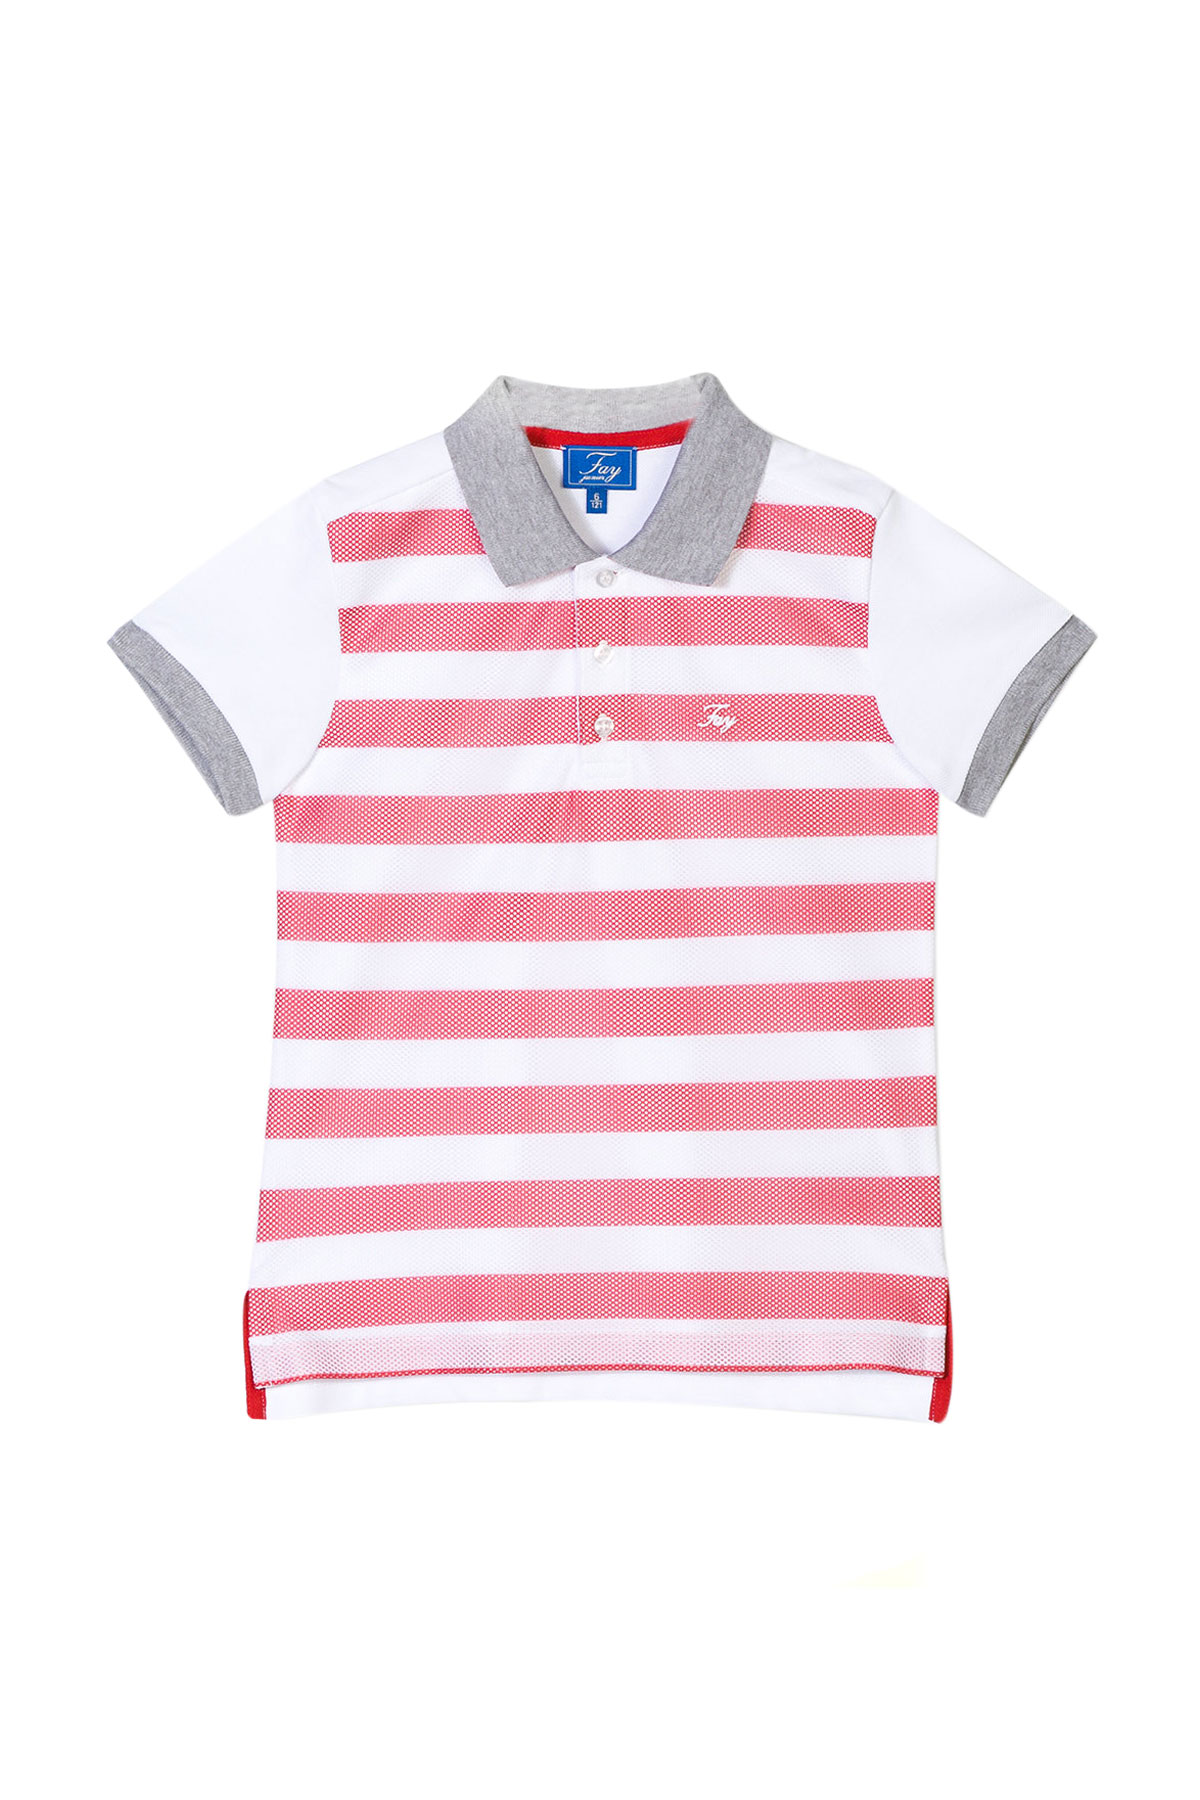 ad89ca04774 ... sale white and red stripes polo shirt fay fay kids 6  ndgb2367760oir0461t 9c022 19d67